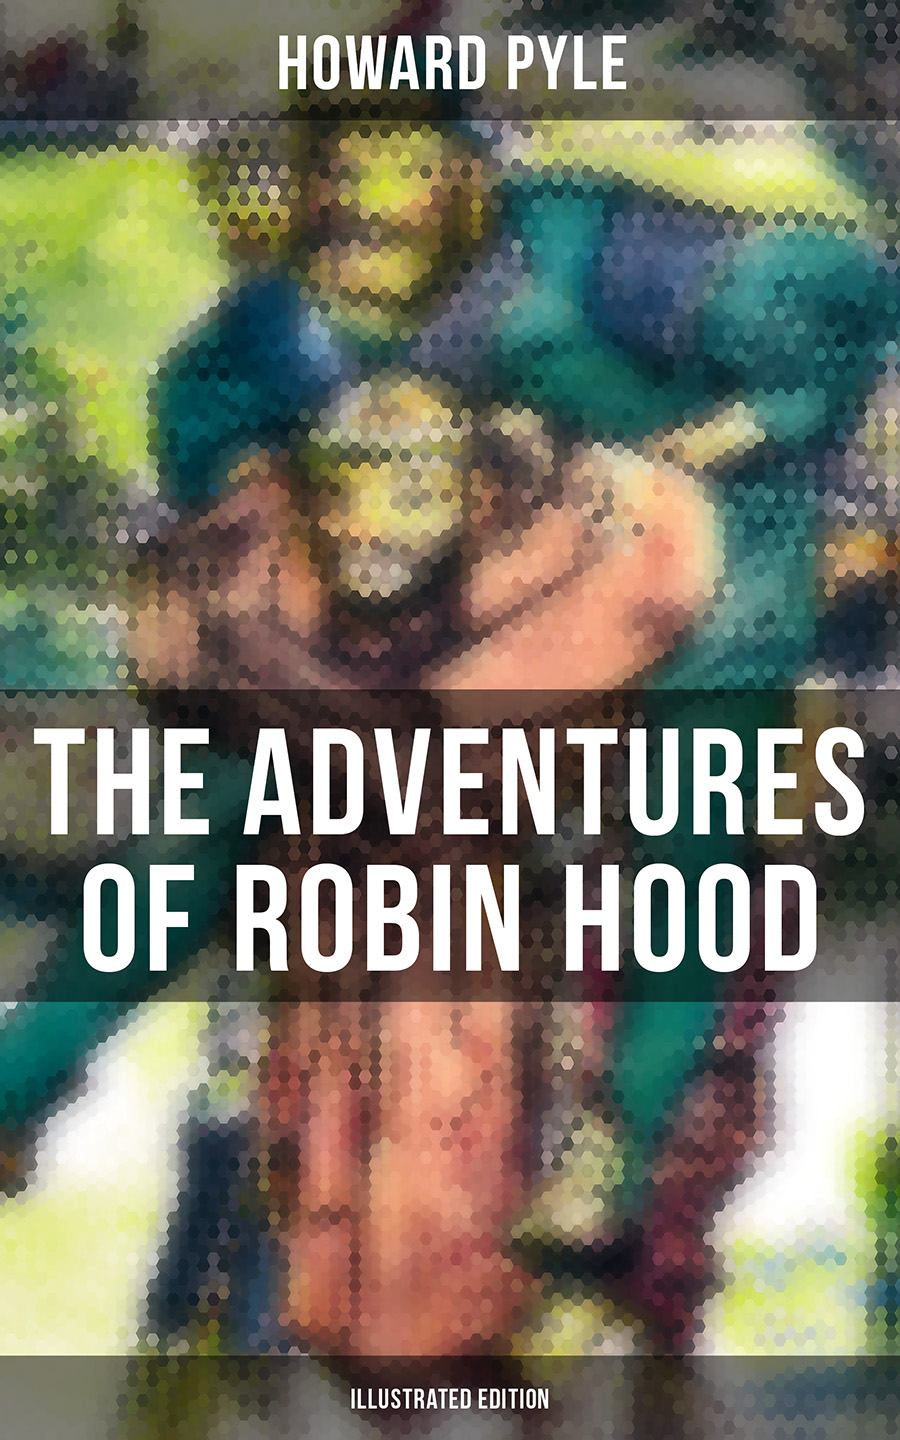 Howard Pyle The Adventures of Robin Hood (Illustrated Edition)